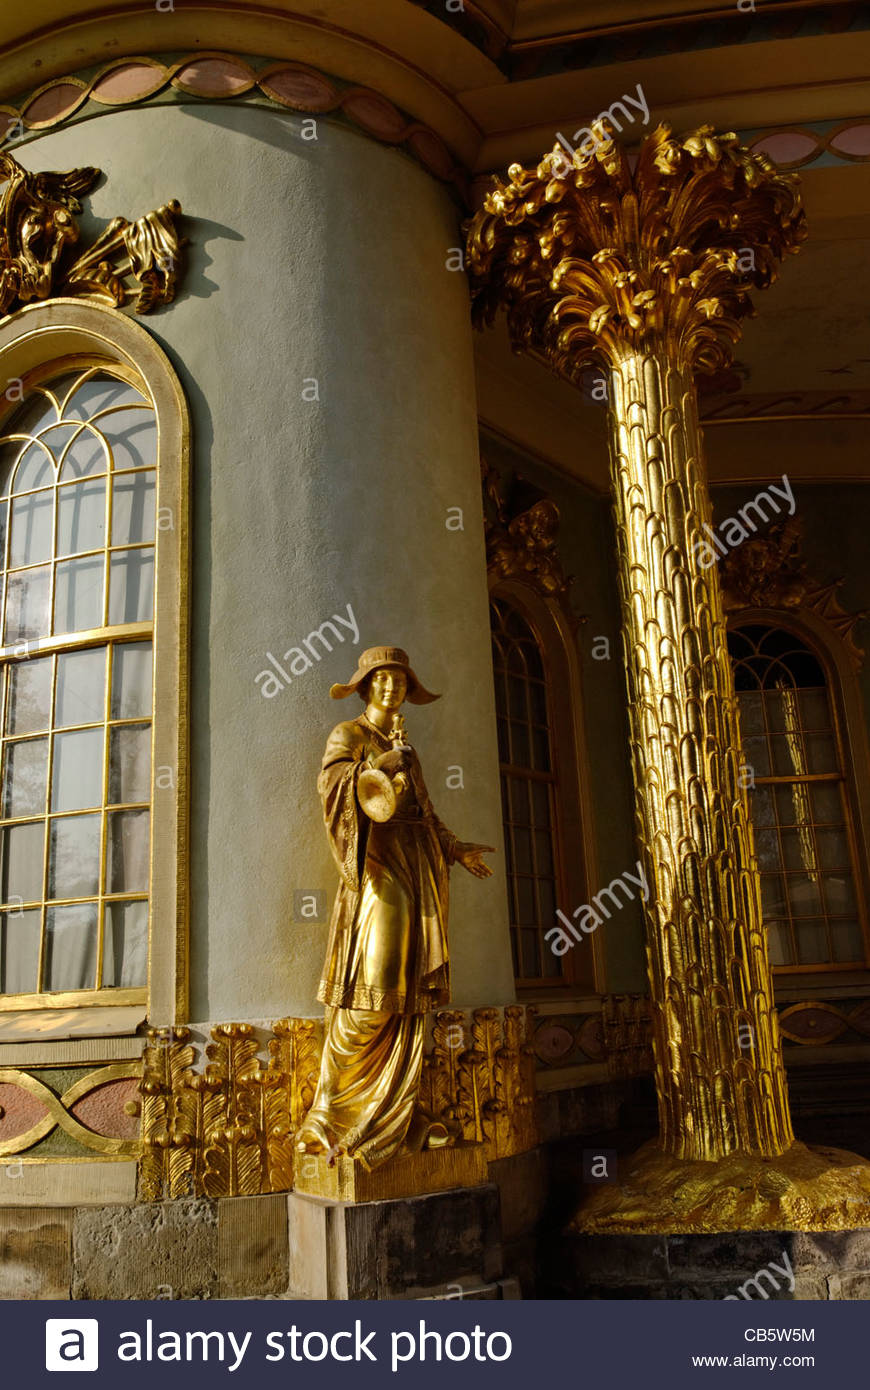 golden statue of a musican playing a horn at The Chinese House, a garden pavilion in Sanssouci Park in Potsdam - Stock Image